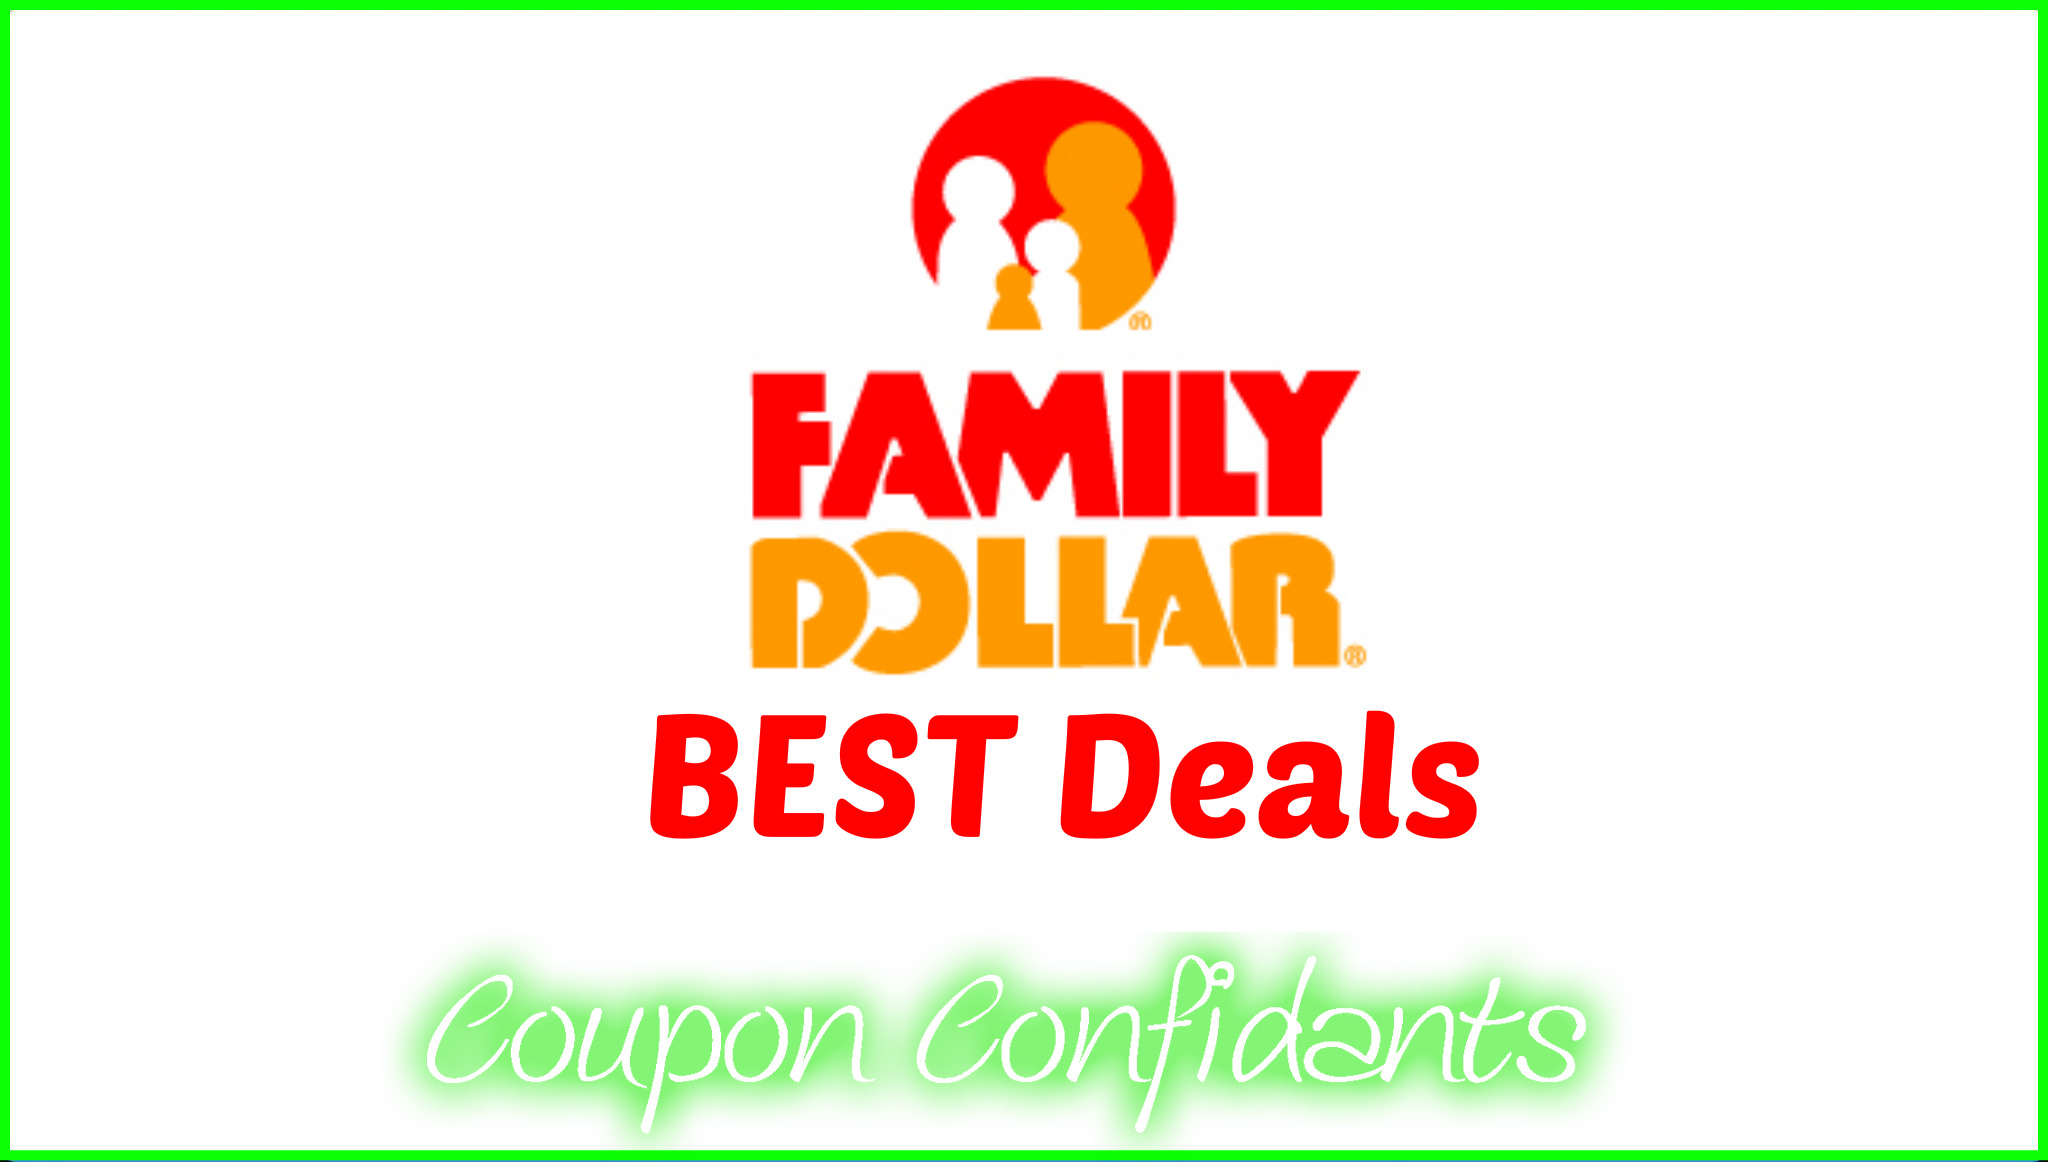 Family Dollar - Dec 12 - Dec 18